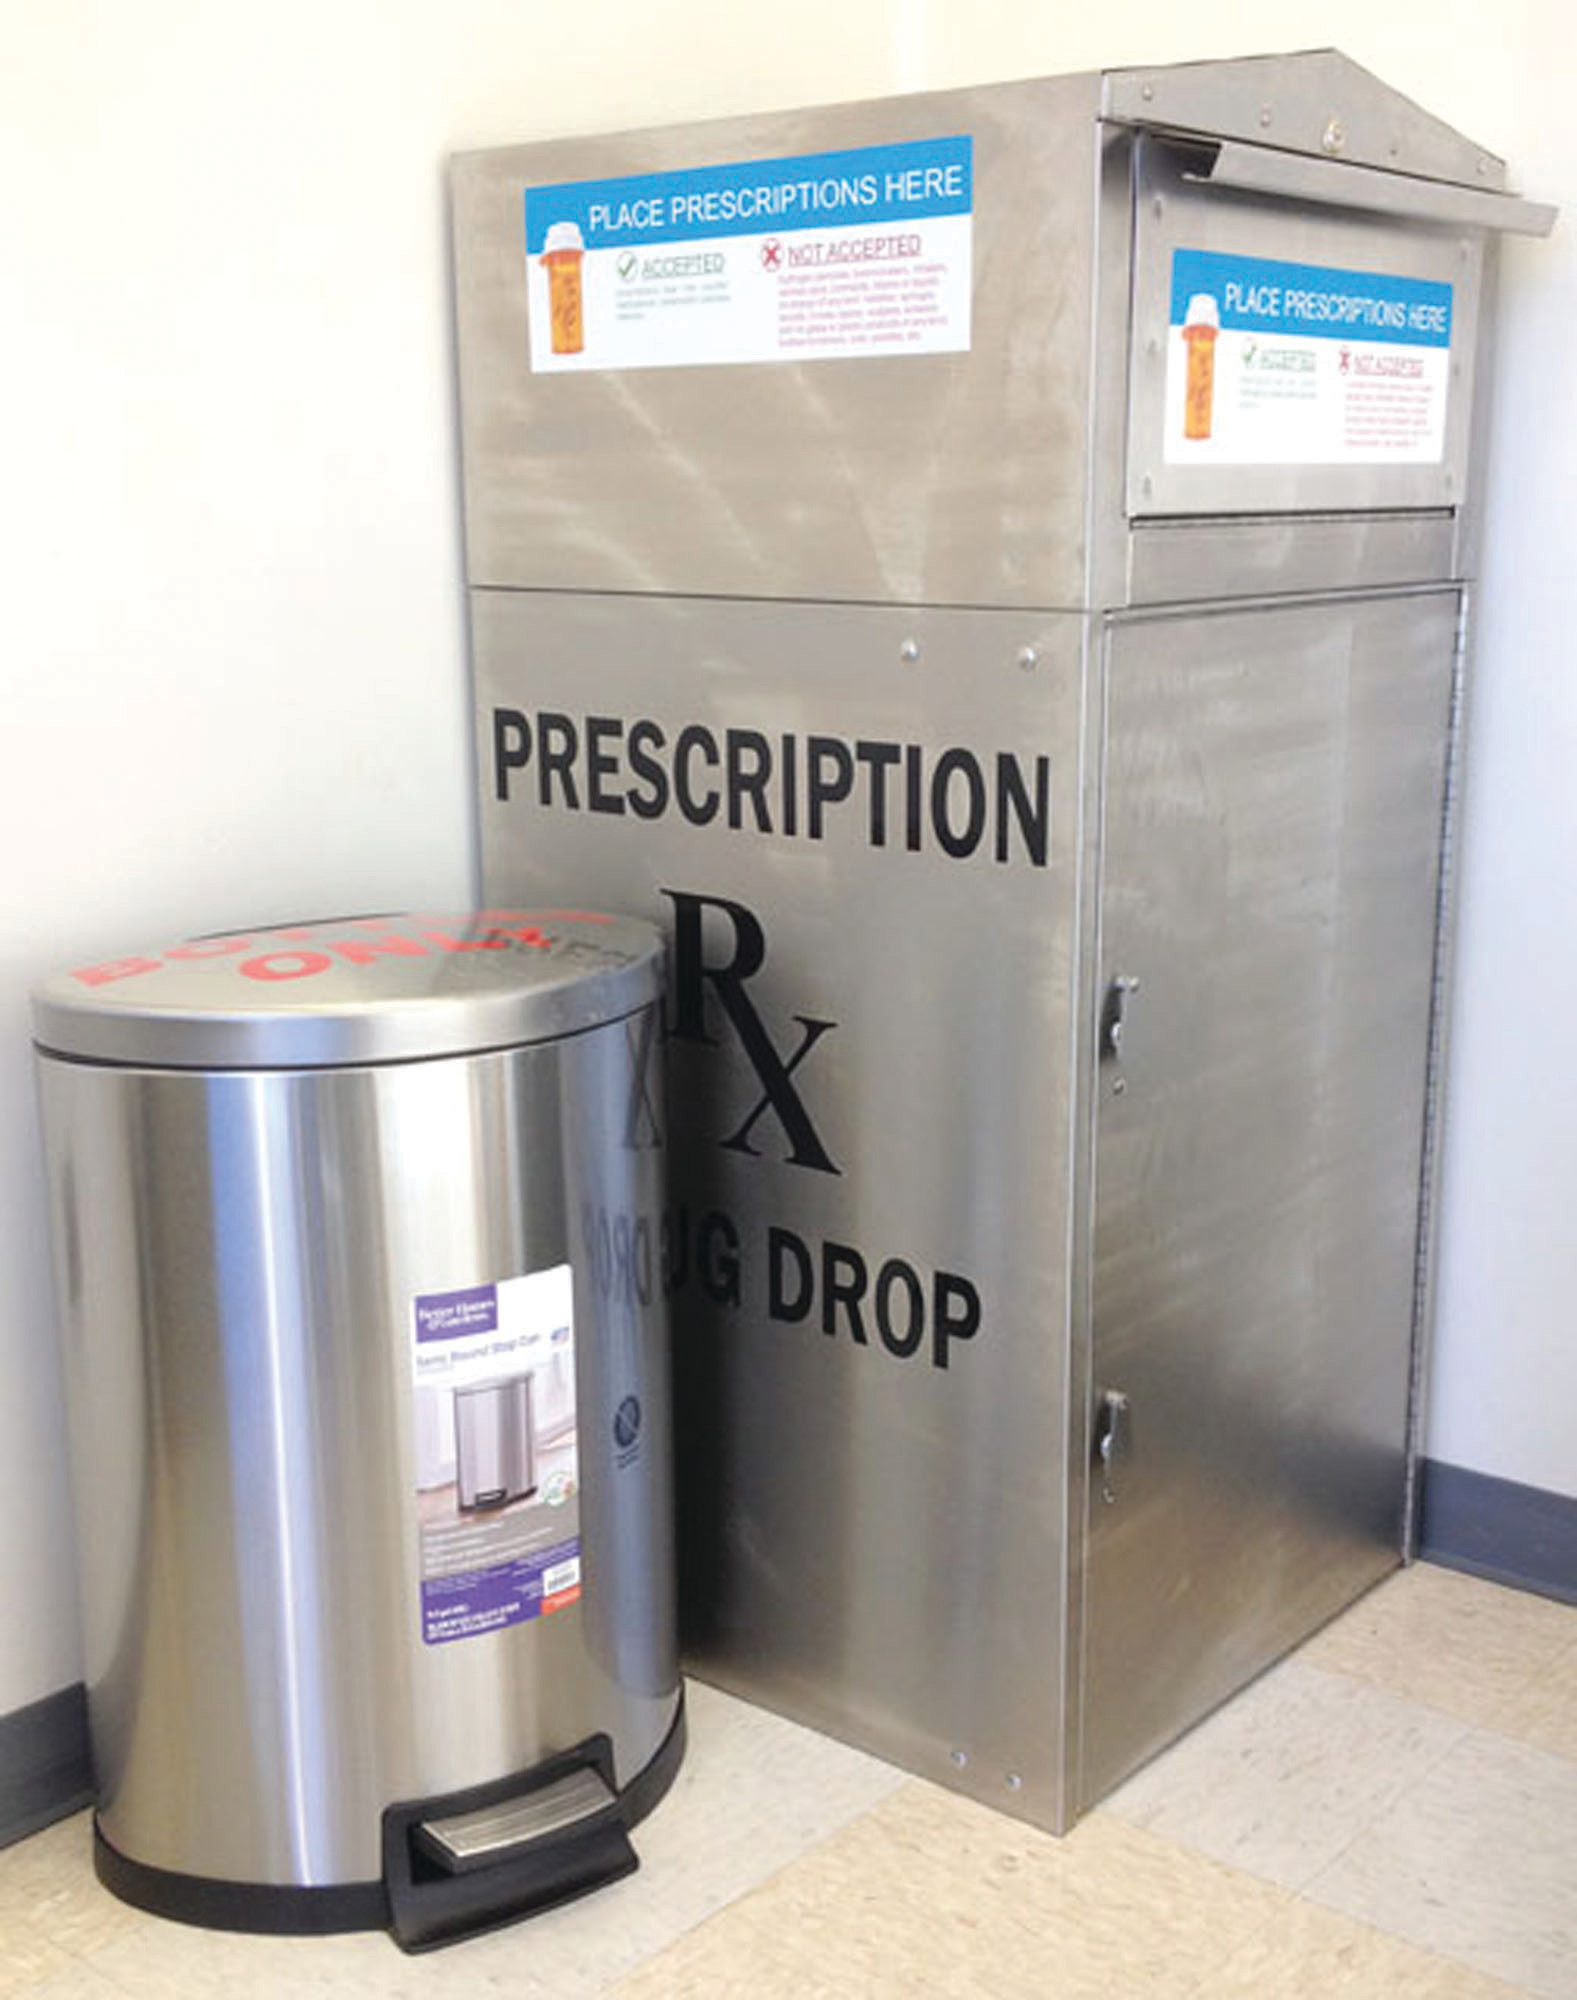 Clarendon Behavioral Health Services has placed a drop box for unwanted medicines in the lobby of Clarendon County Sheriff's Office at 217 Commerce St. Individuals should bring the medicine in the proper containers with all of its identifying information marked off the bottles or containers, leaving just the name of the medication visible. Individuals transporting a bag of pills without the accompanying bottle or container could be charged if they're stopped by a law enforcement official. Individuals should dump the medicine in the drop box and put the medicine containers in the trash can that is located beside the drop box.